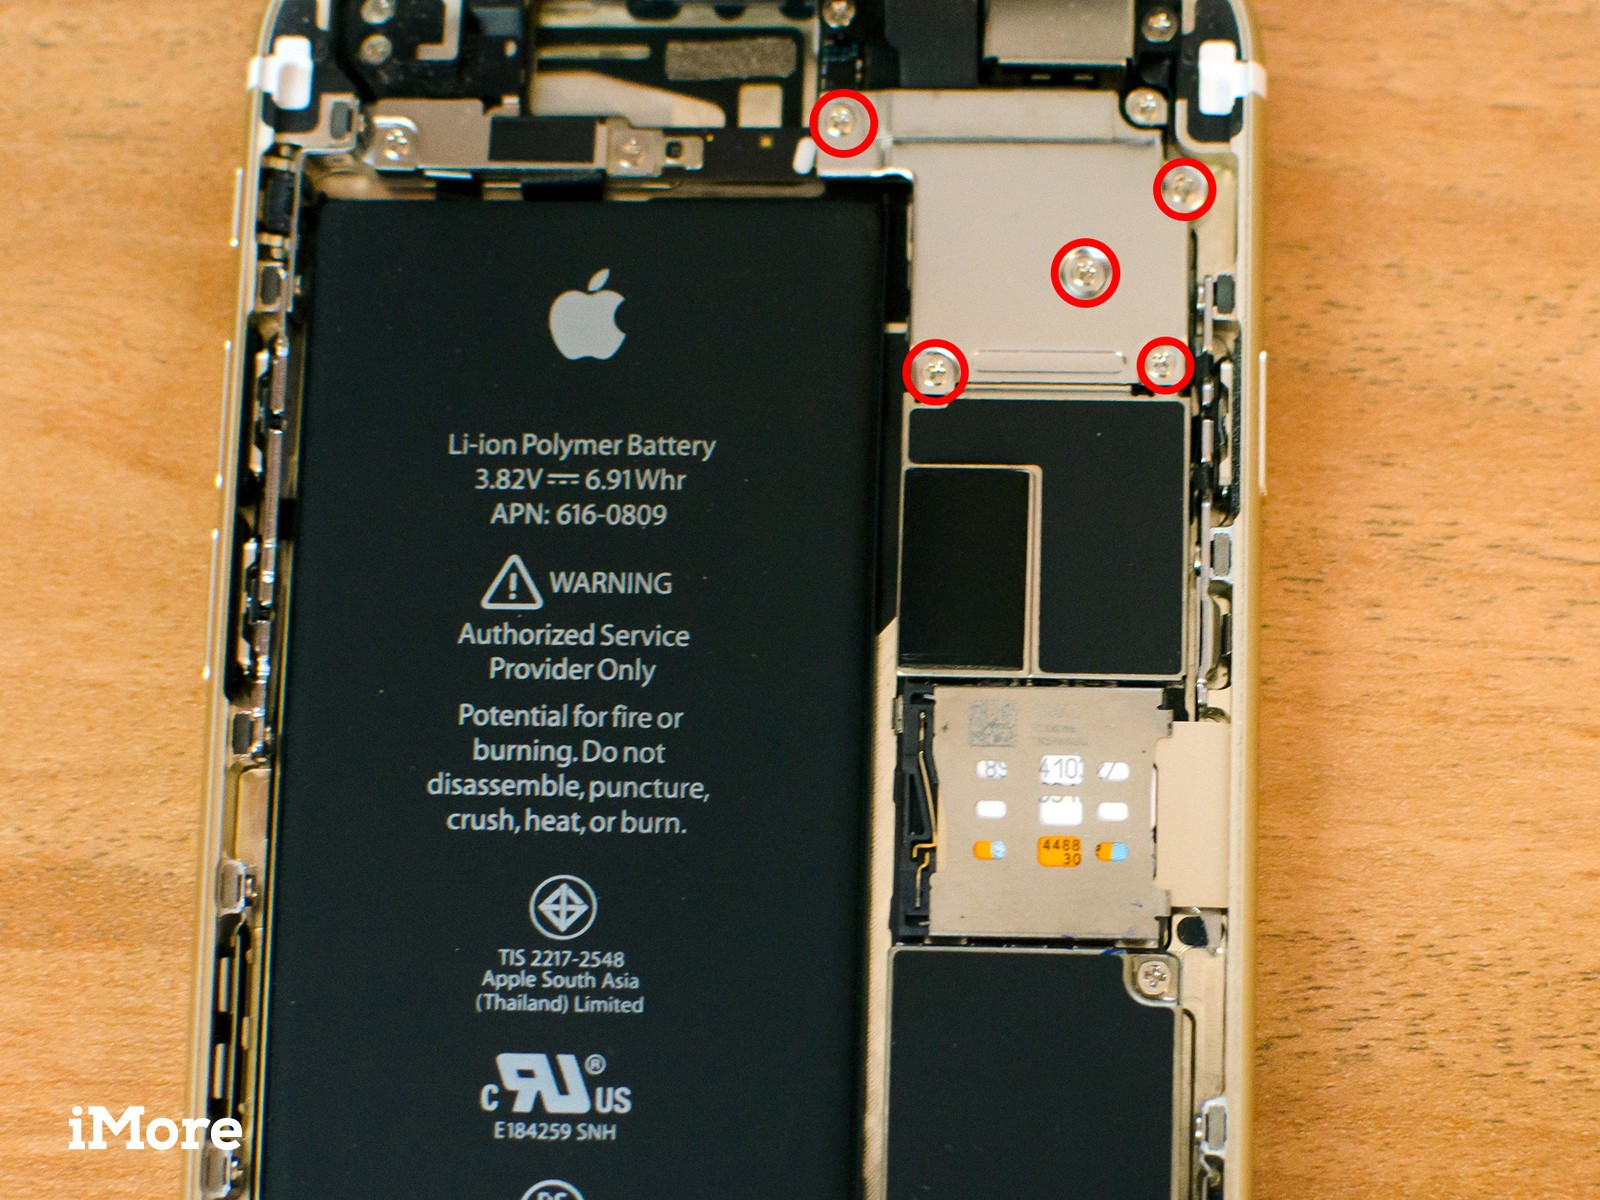 How to fix a broken iPhone 6 screen in less than 10 minutes